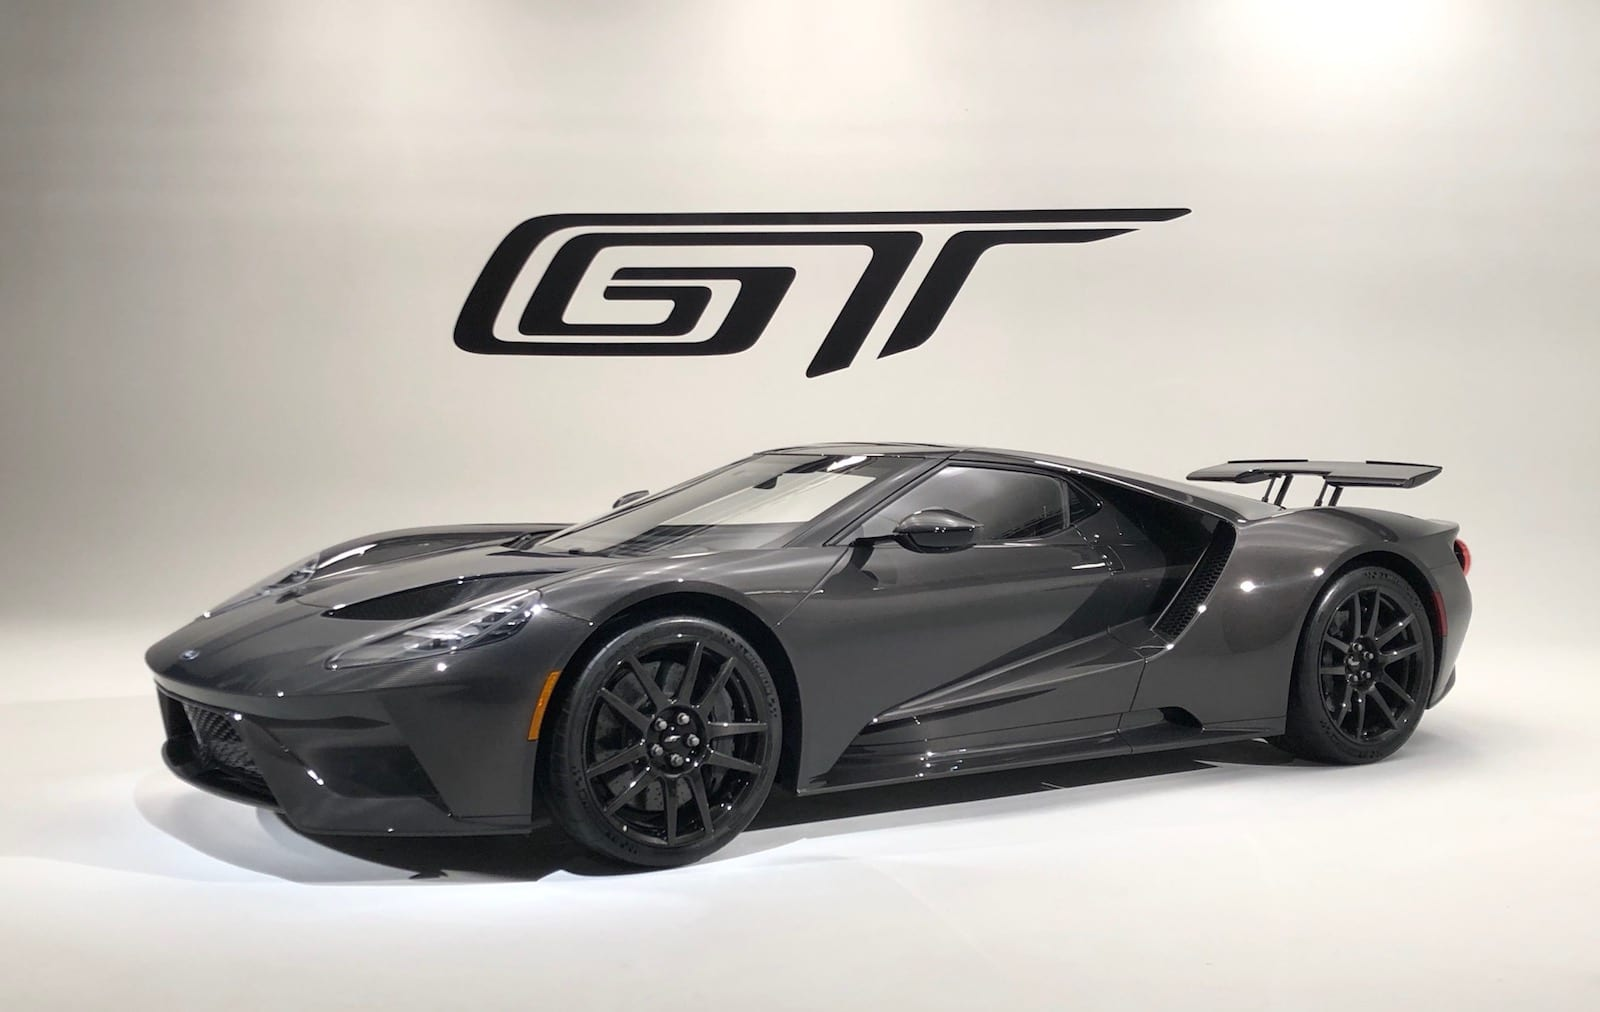 2020 Ford Gt Supercar Overview